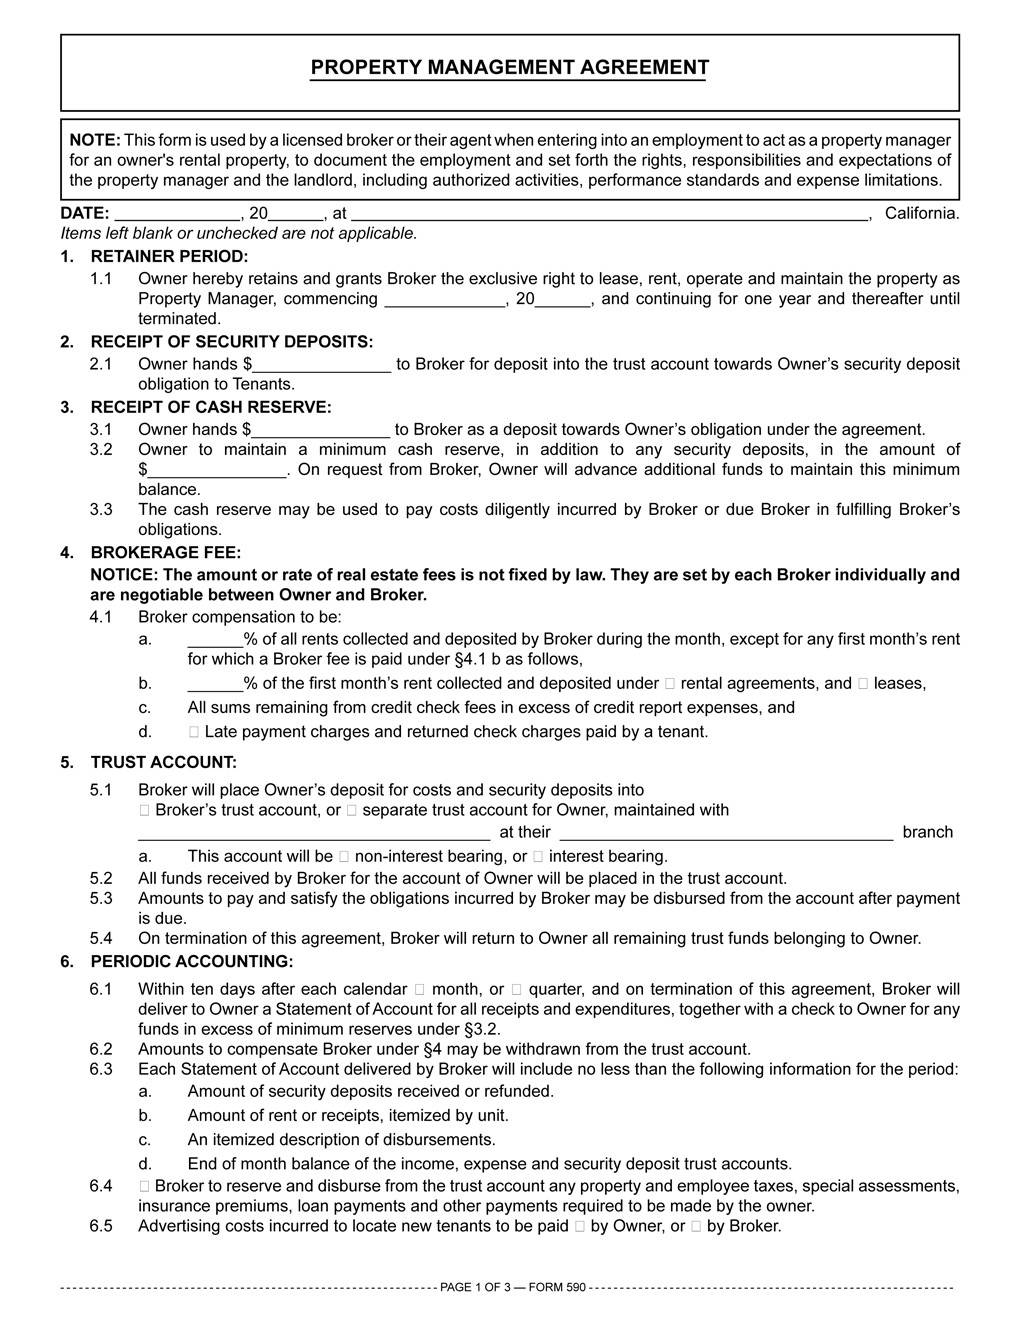 Real Estate Management Agreement Template